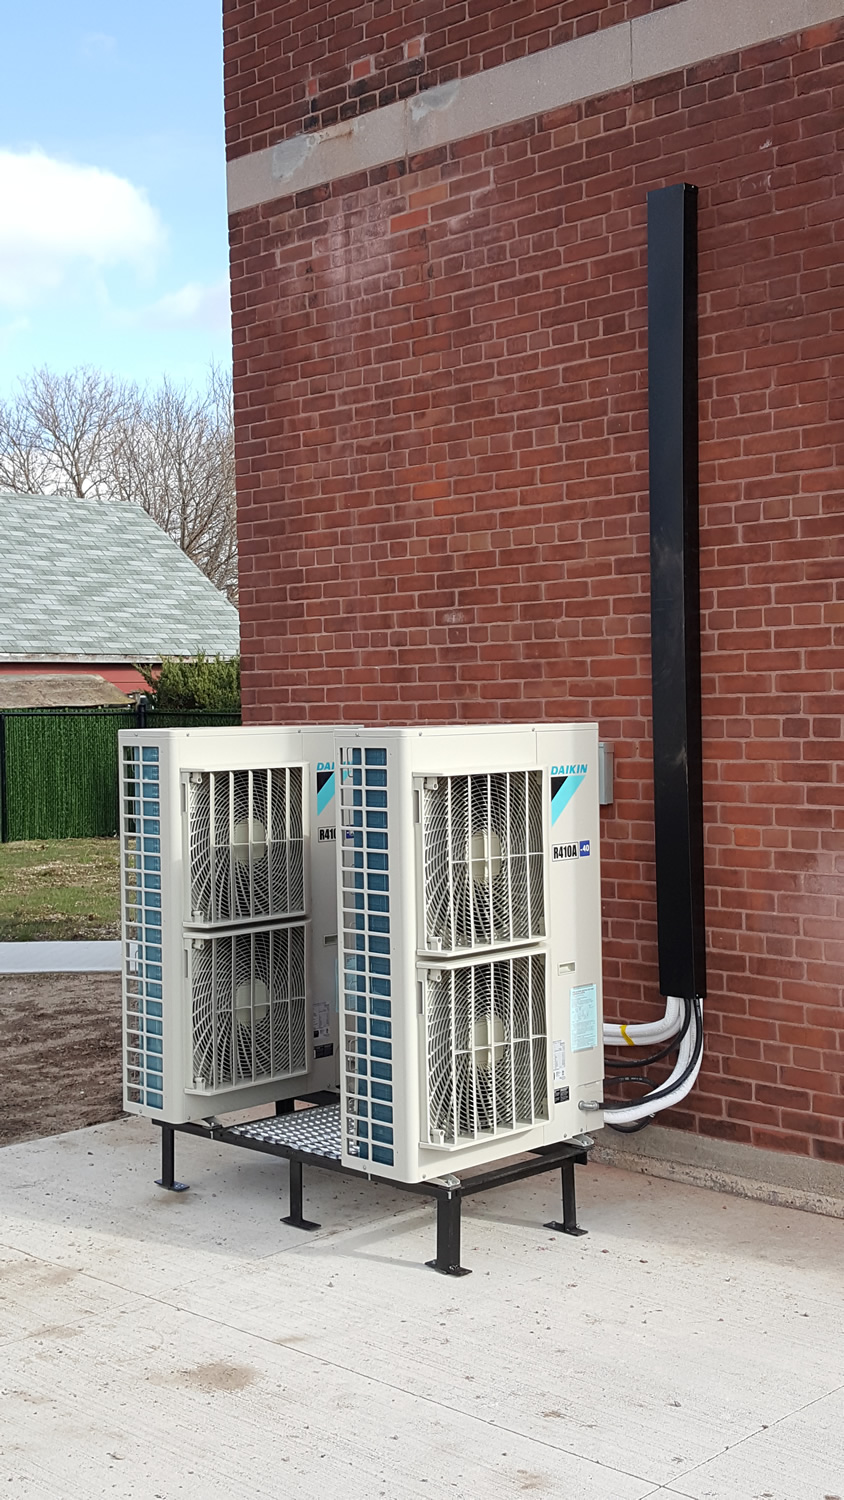 Data Room Cooling in Brantford and Southwestern Ontario | Brantworth ...